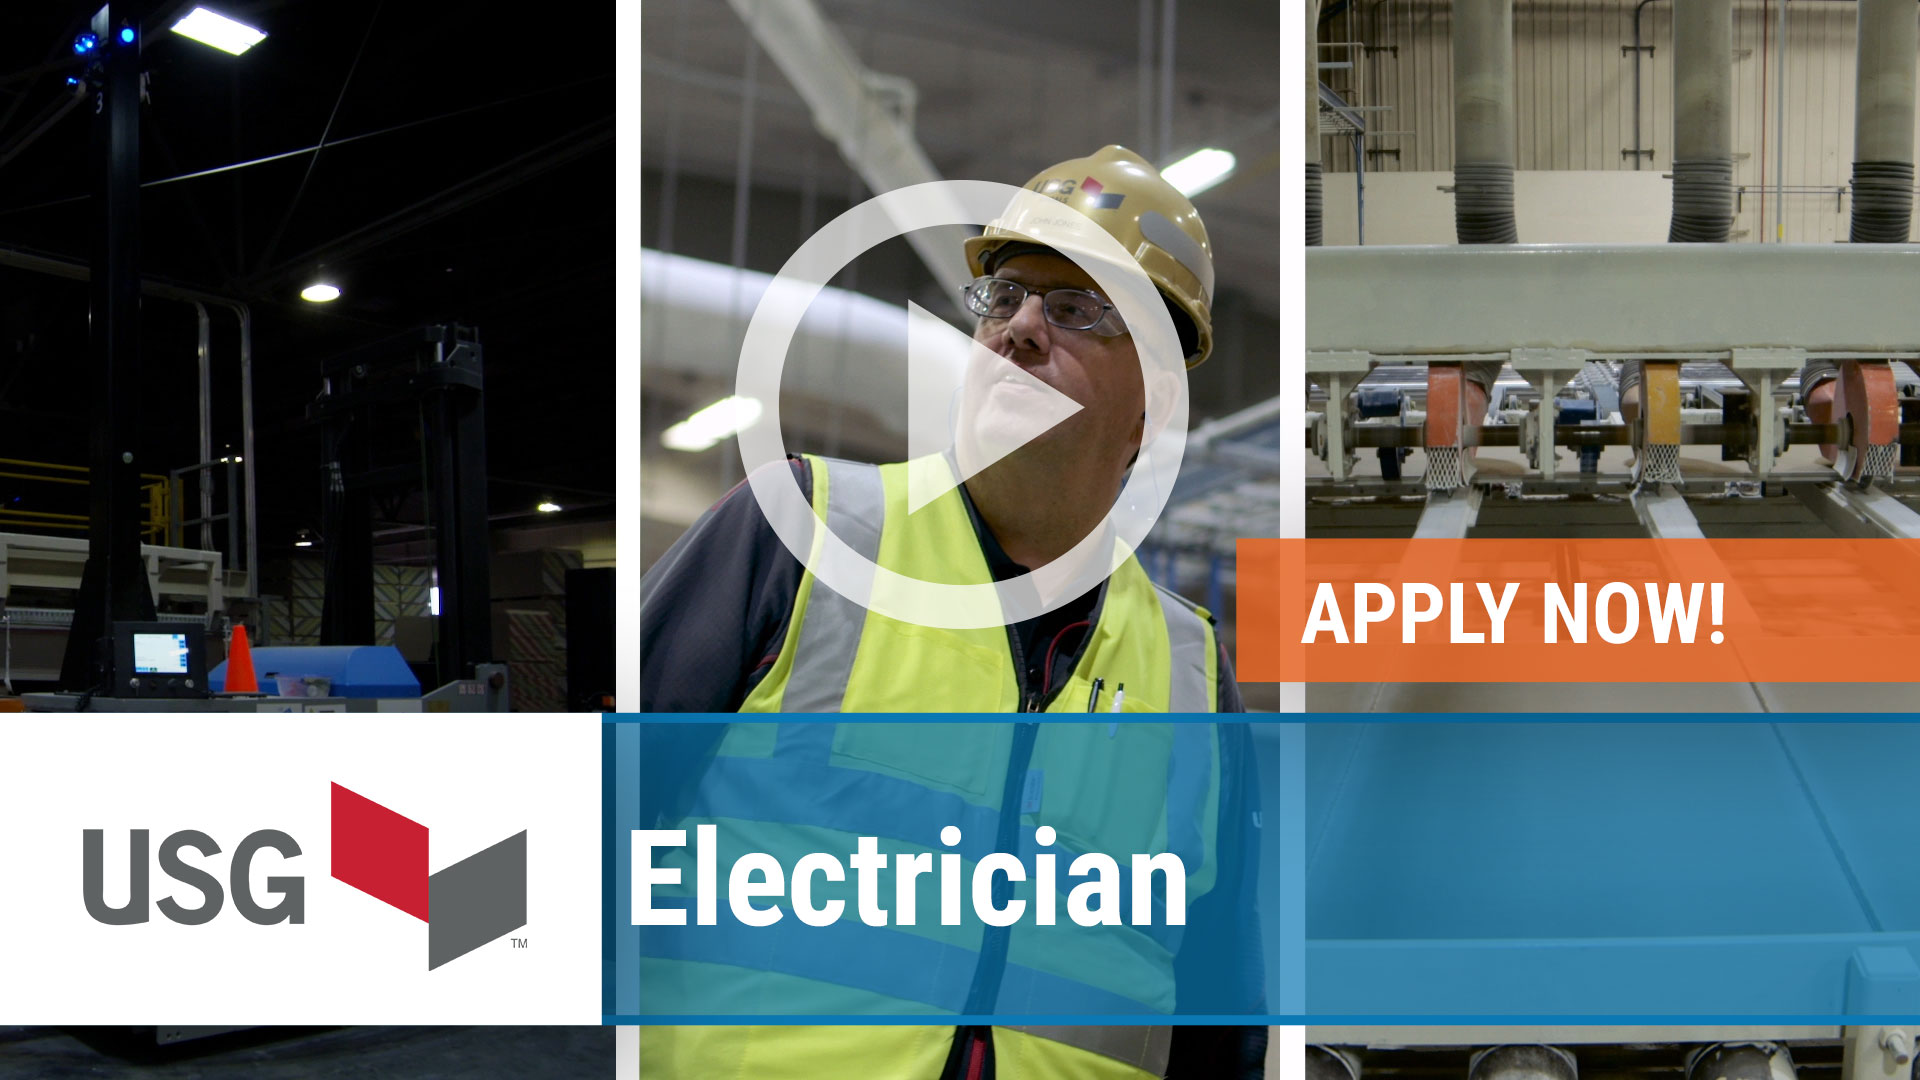 Watch our careers video for available job opening Electrician in Oakfield, NY, USA